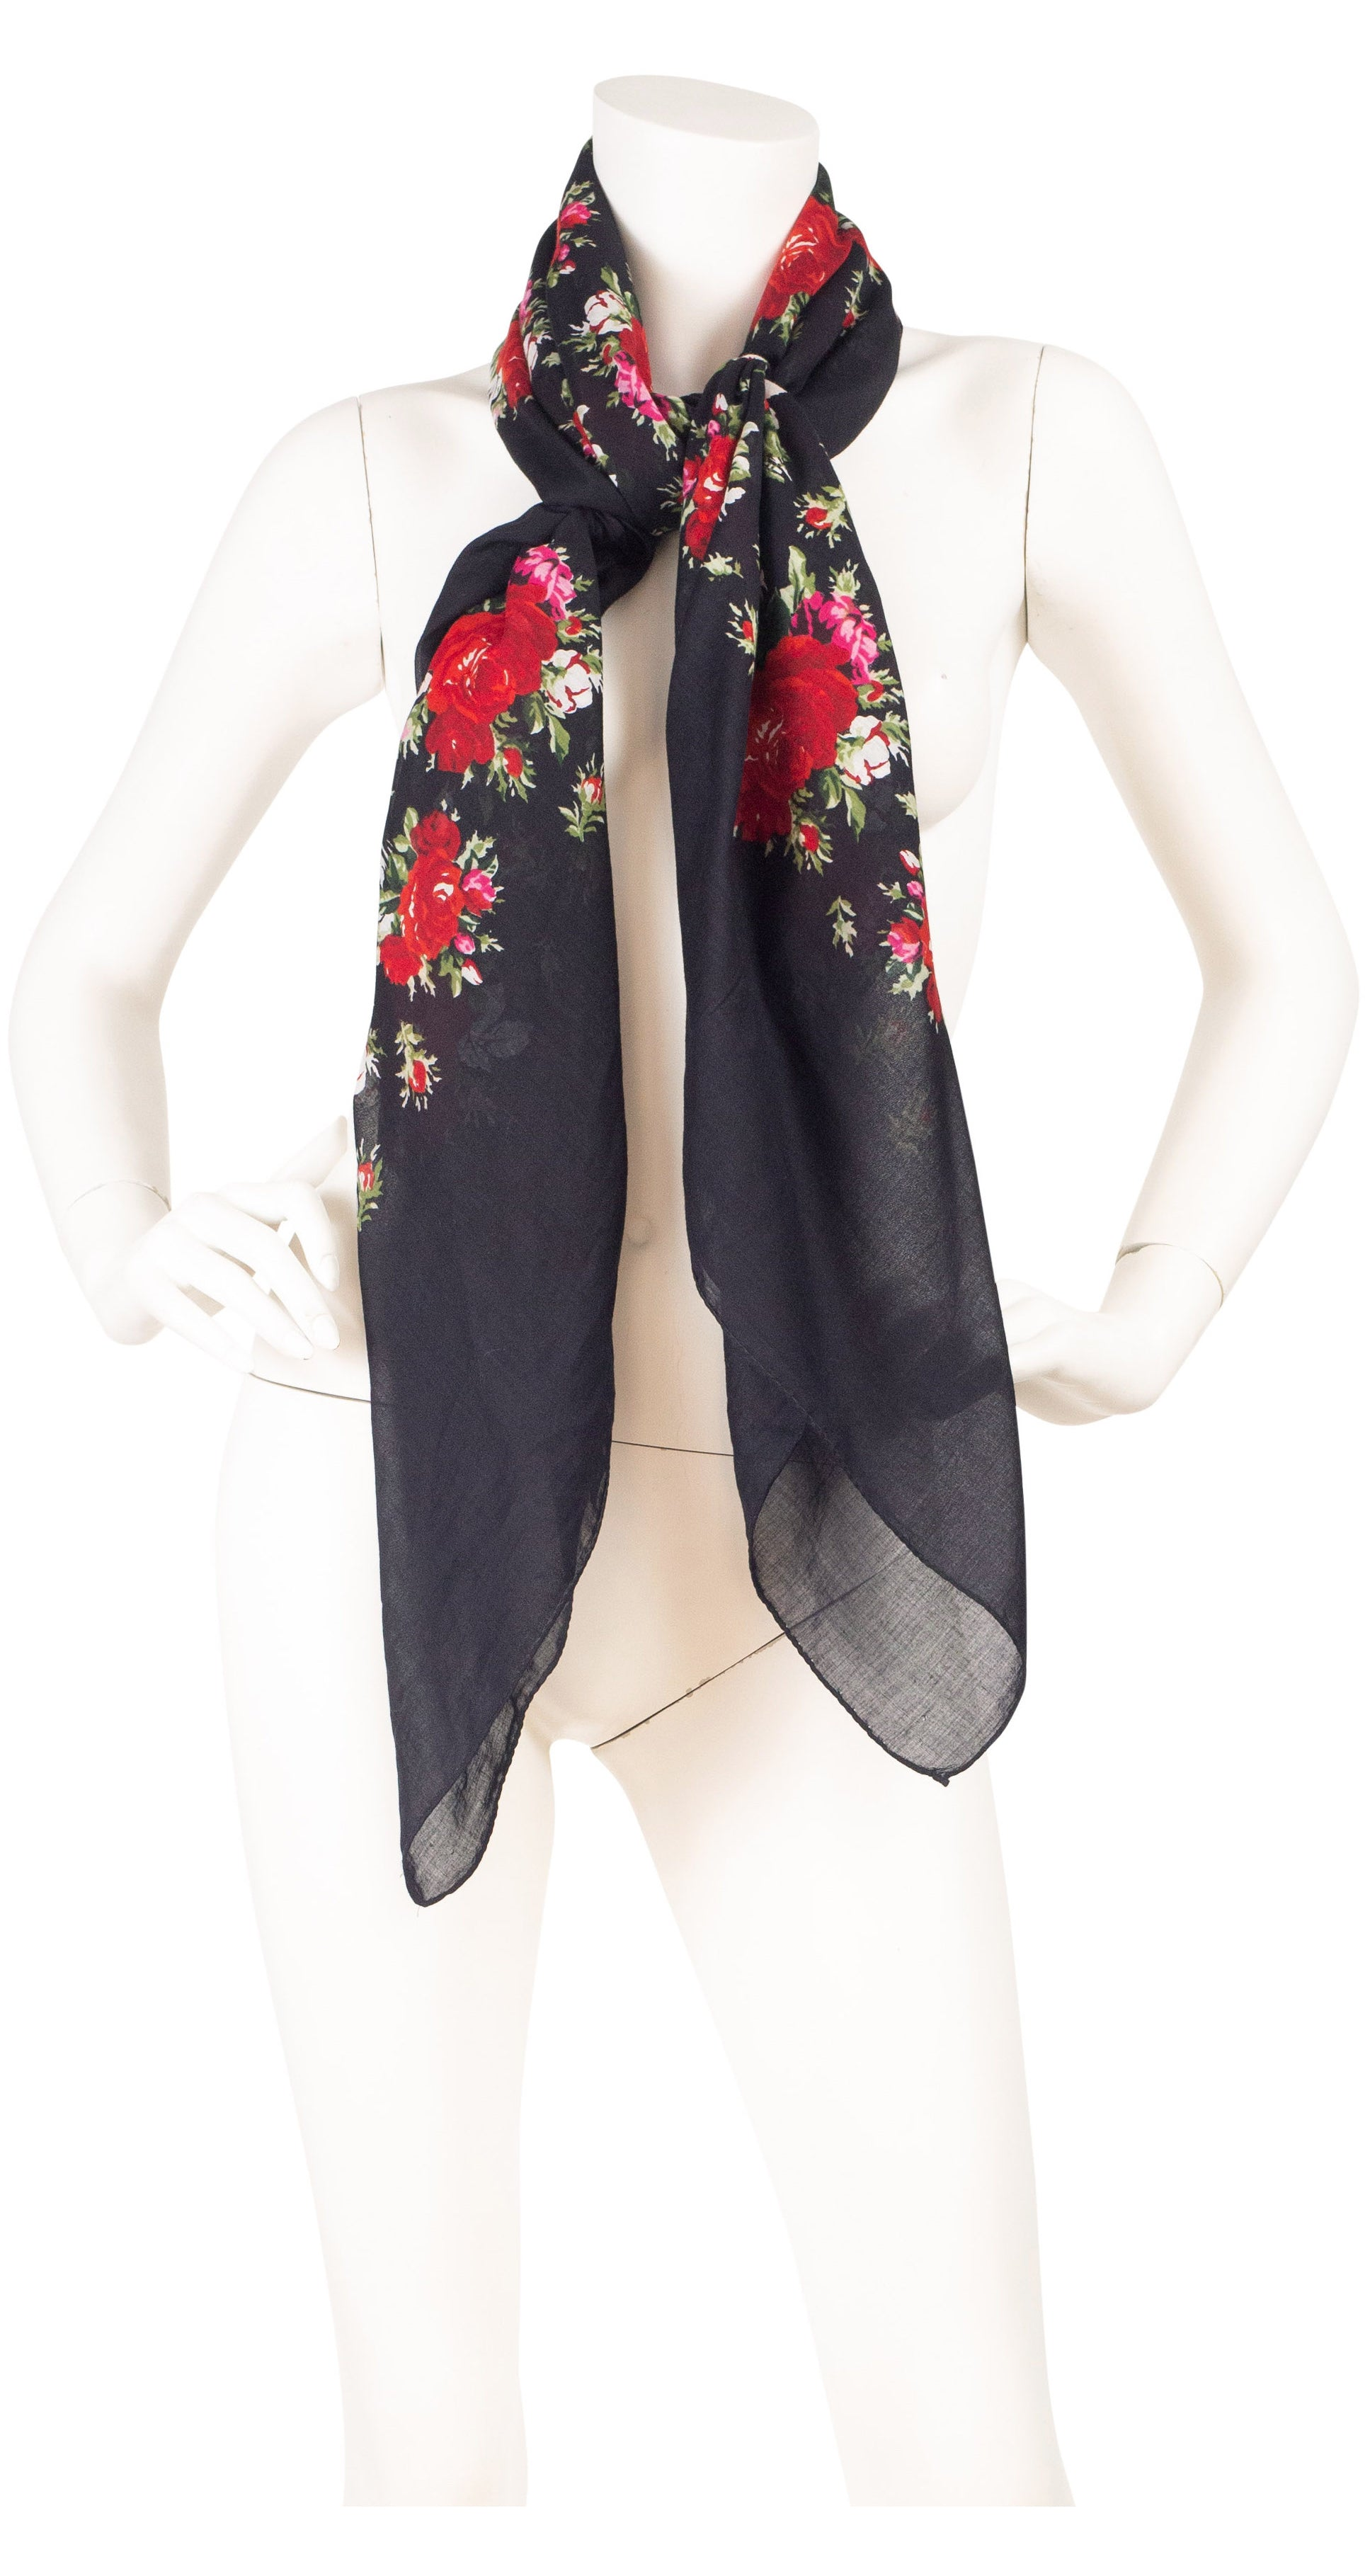 1970s Huge Red Rose Print Black Cotton Scarf